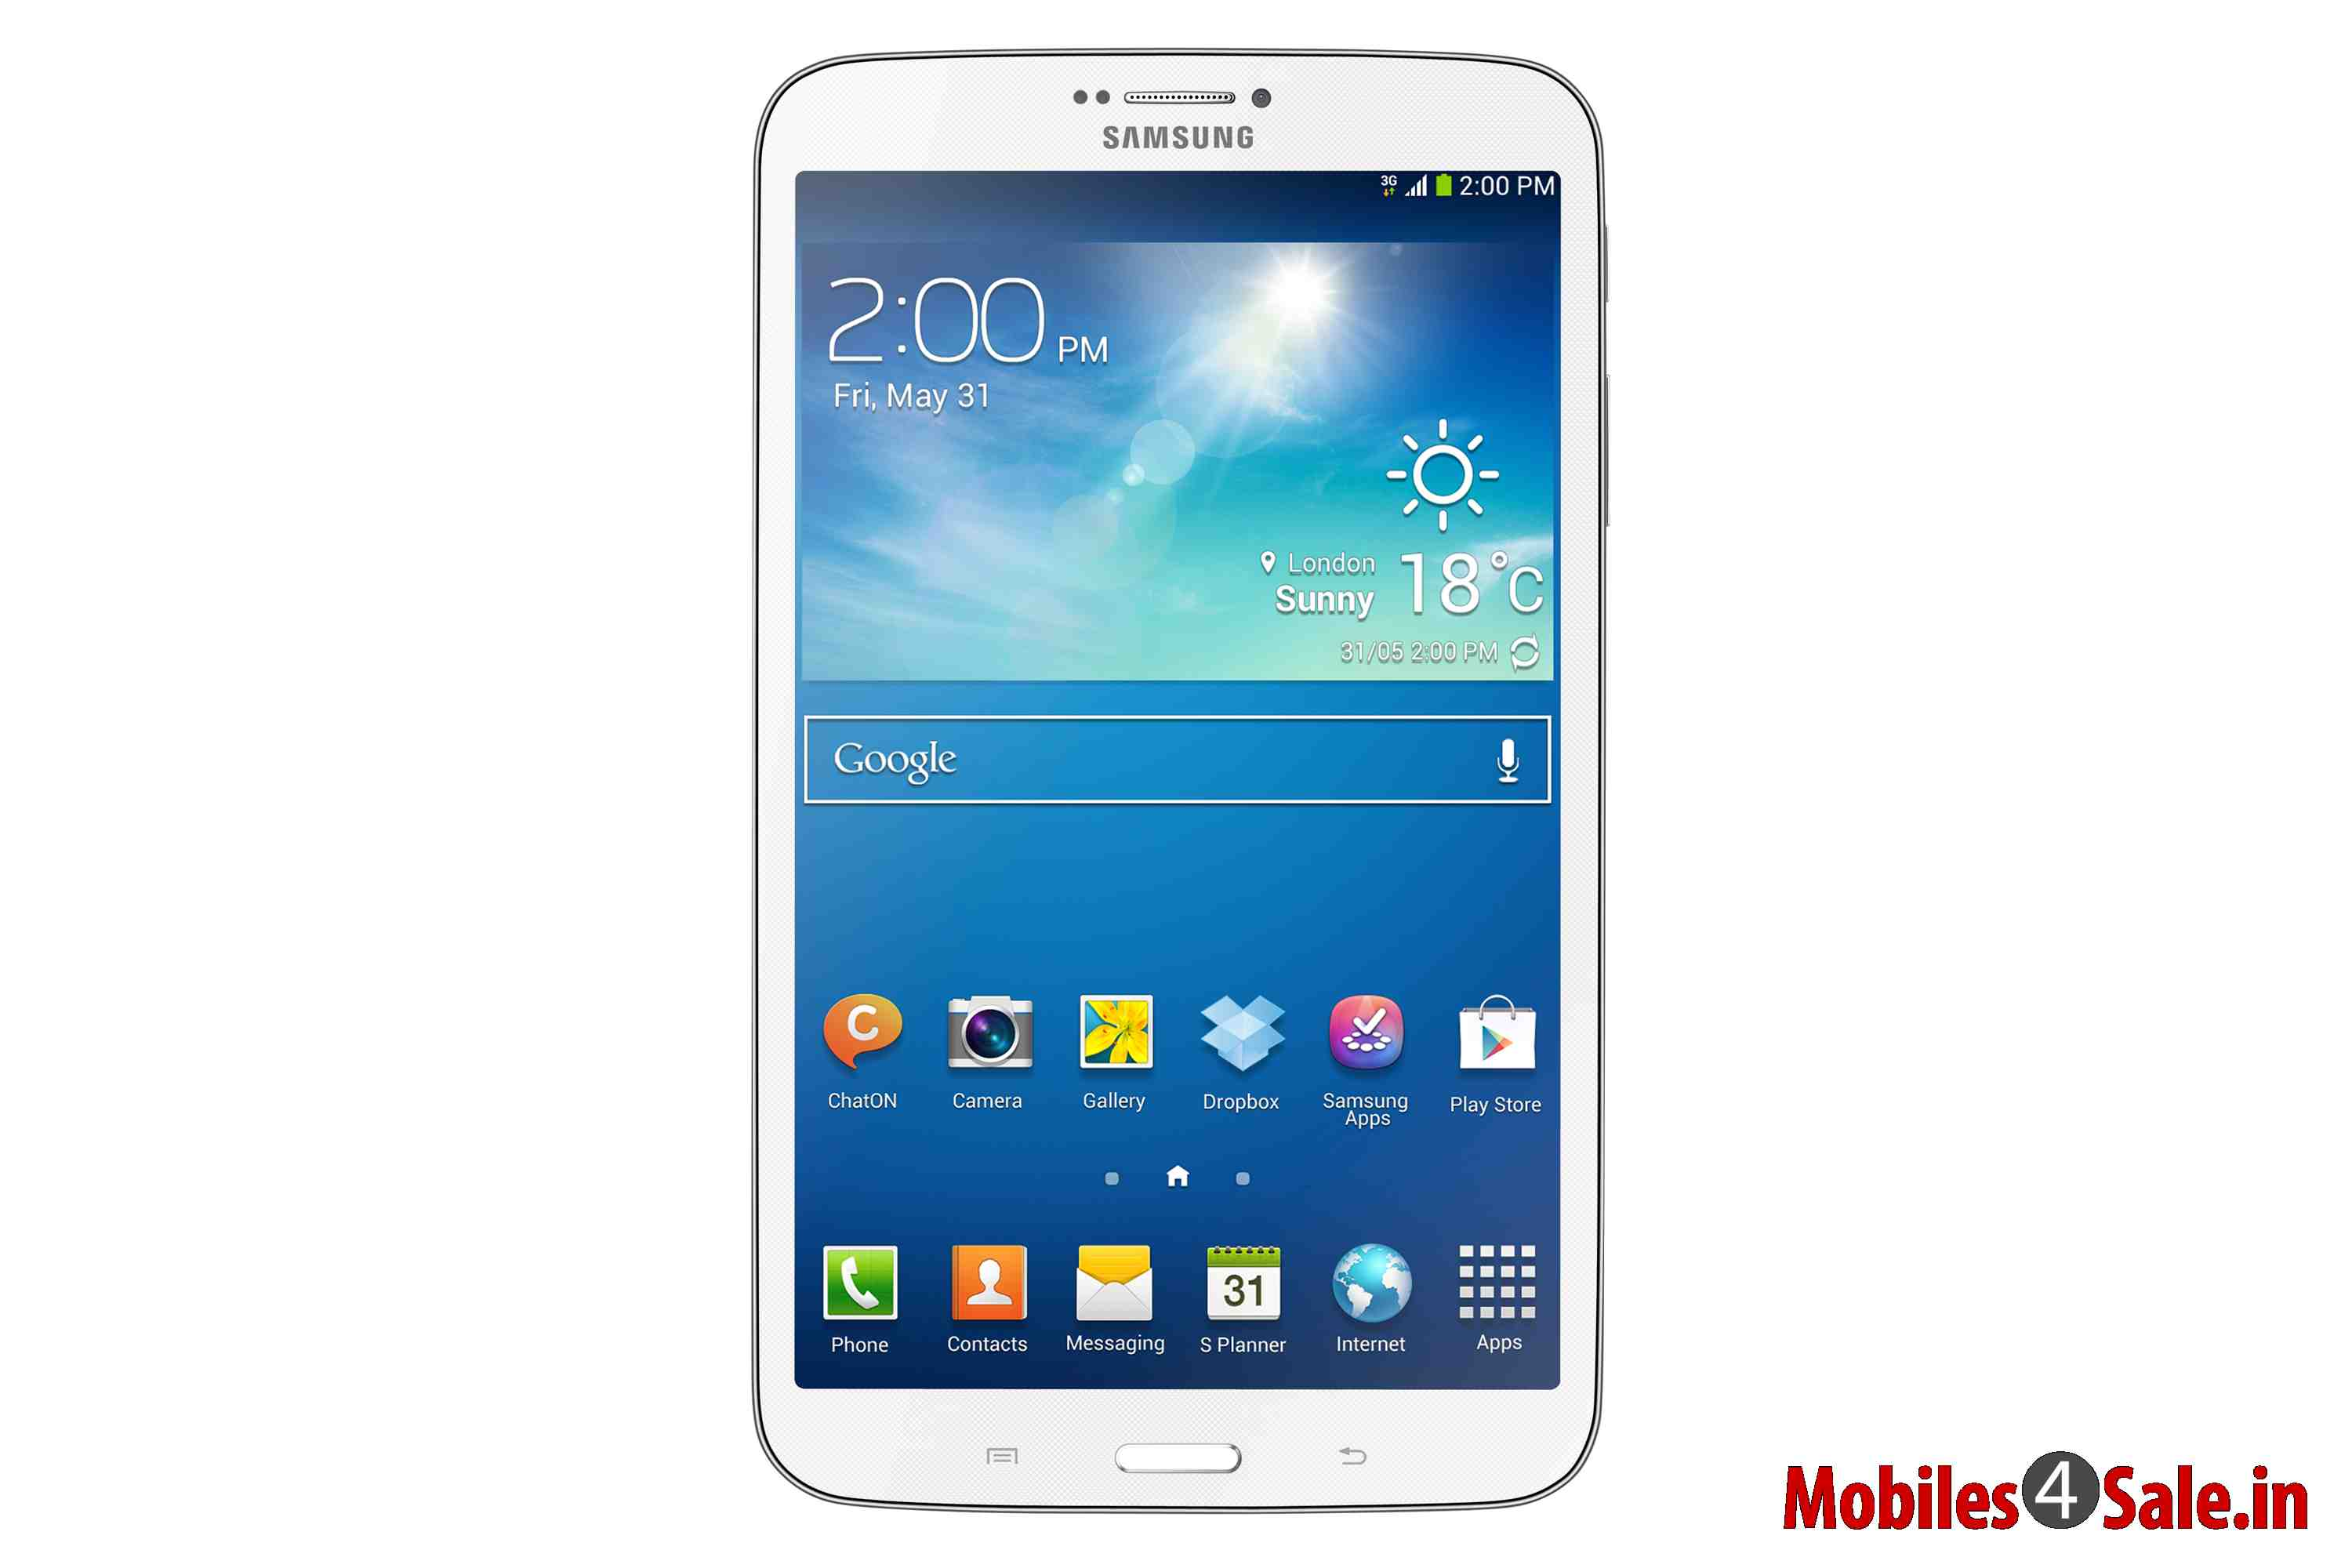 Samsung Galaxy Tab 3 311 Price, Specifications, Features ...